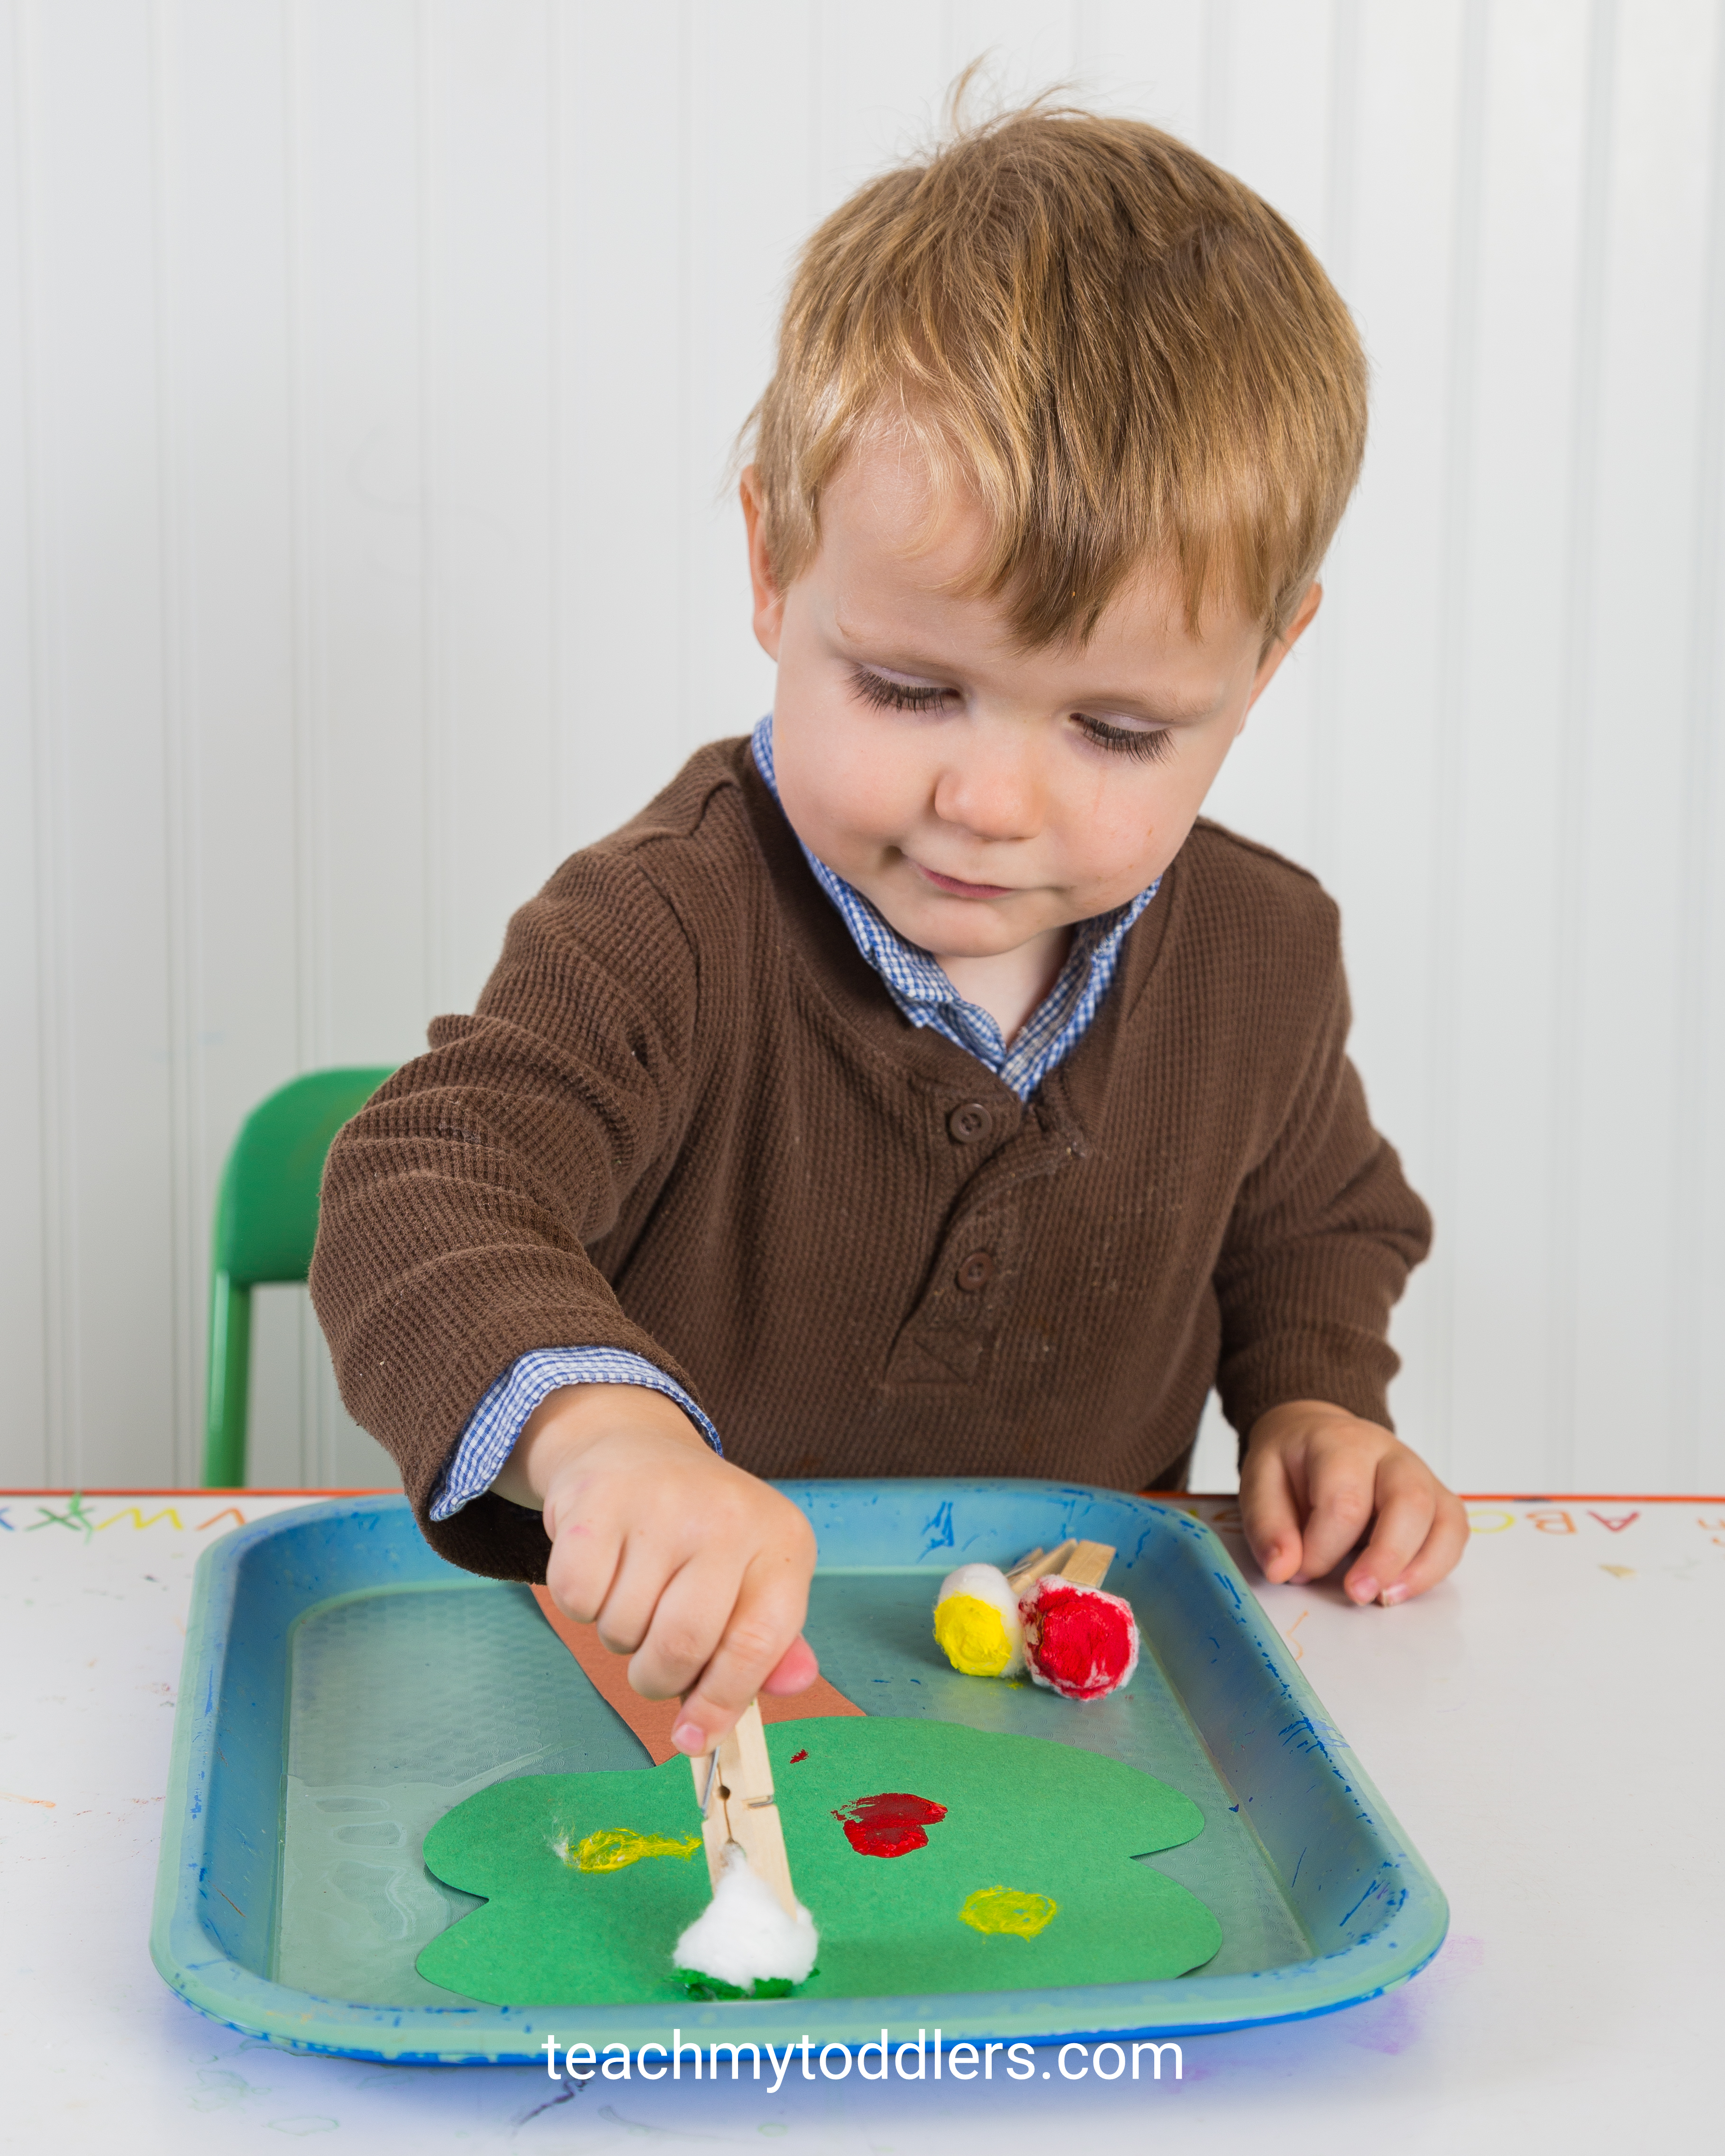 These activities are fun in teaching your toddlers the letter a is for apples